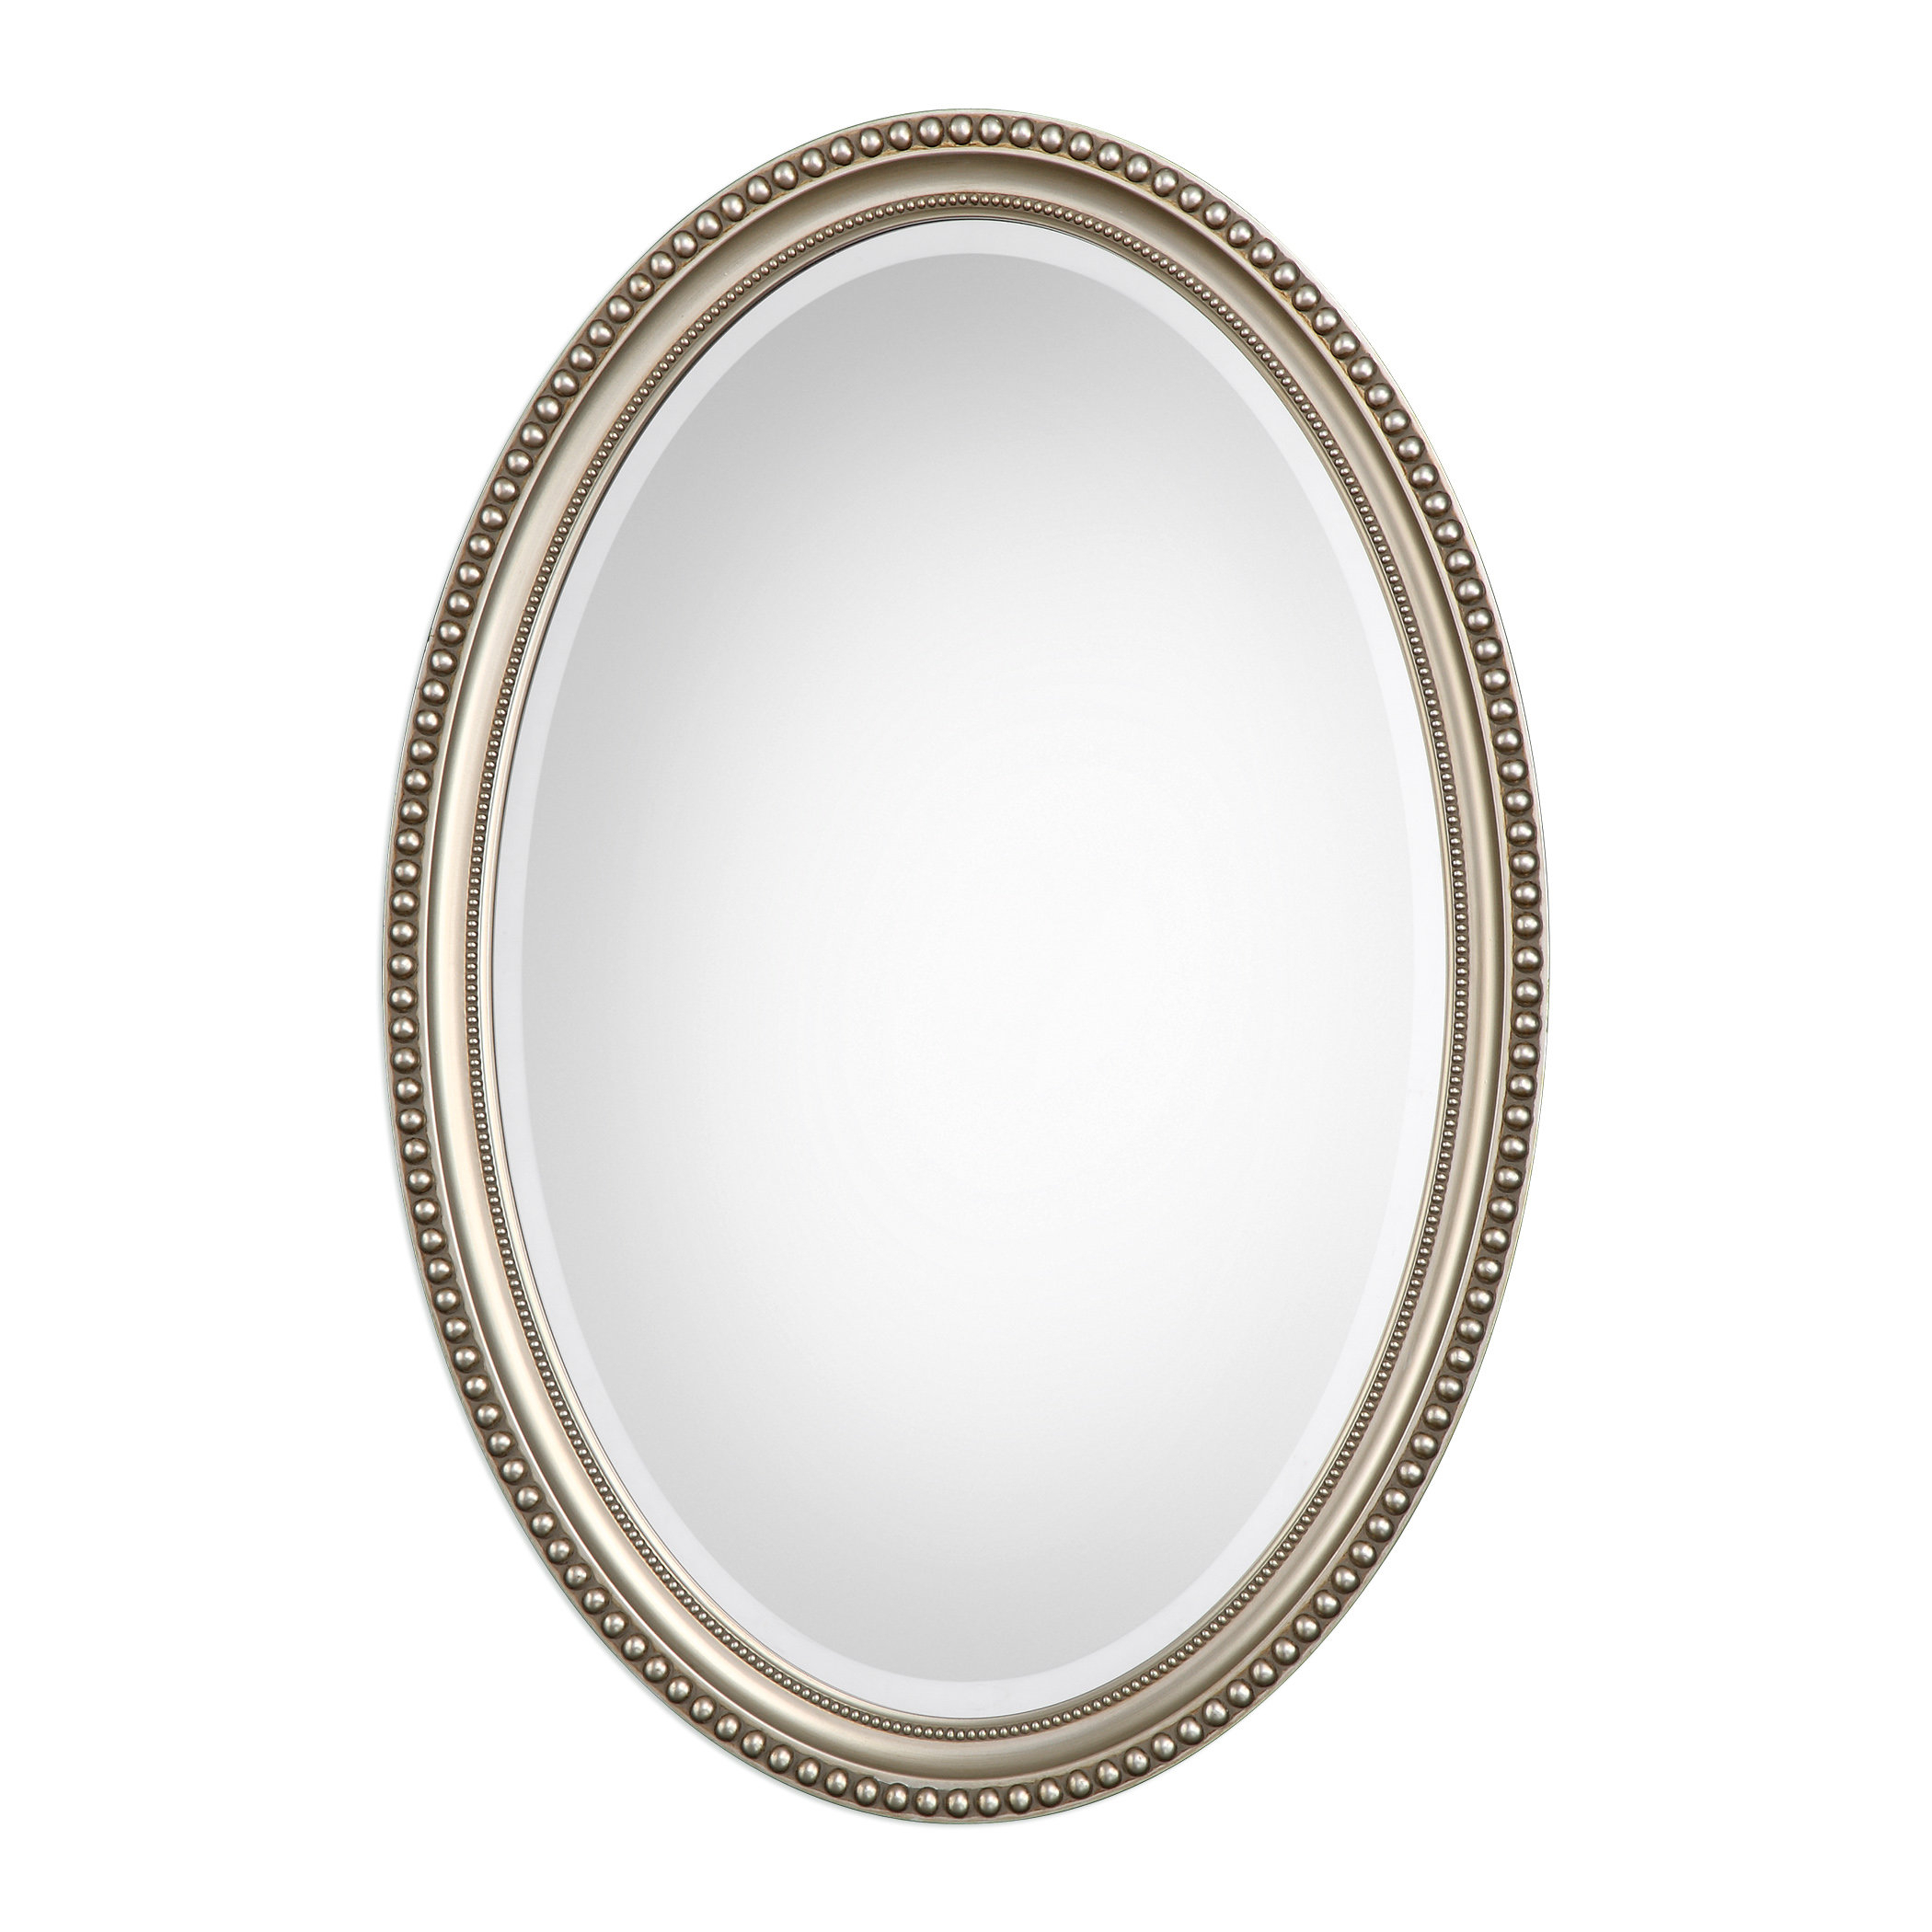 Oval Metallic Accent Mirror Intended For Oval Metallic Accent Mirrors (Image 16 of 20)